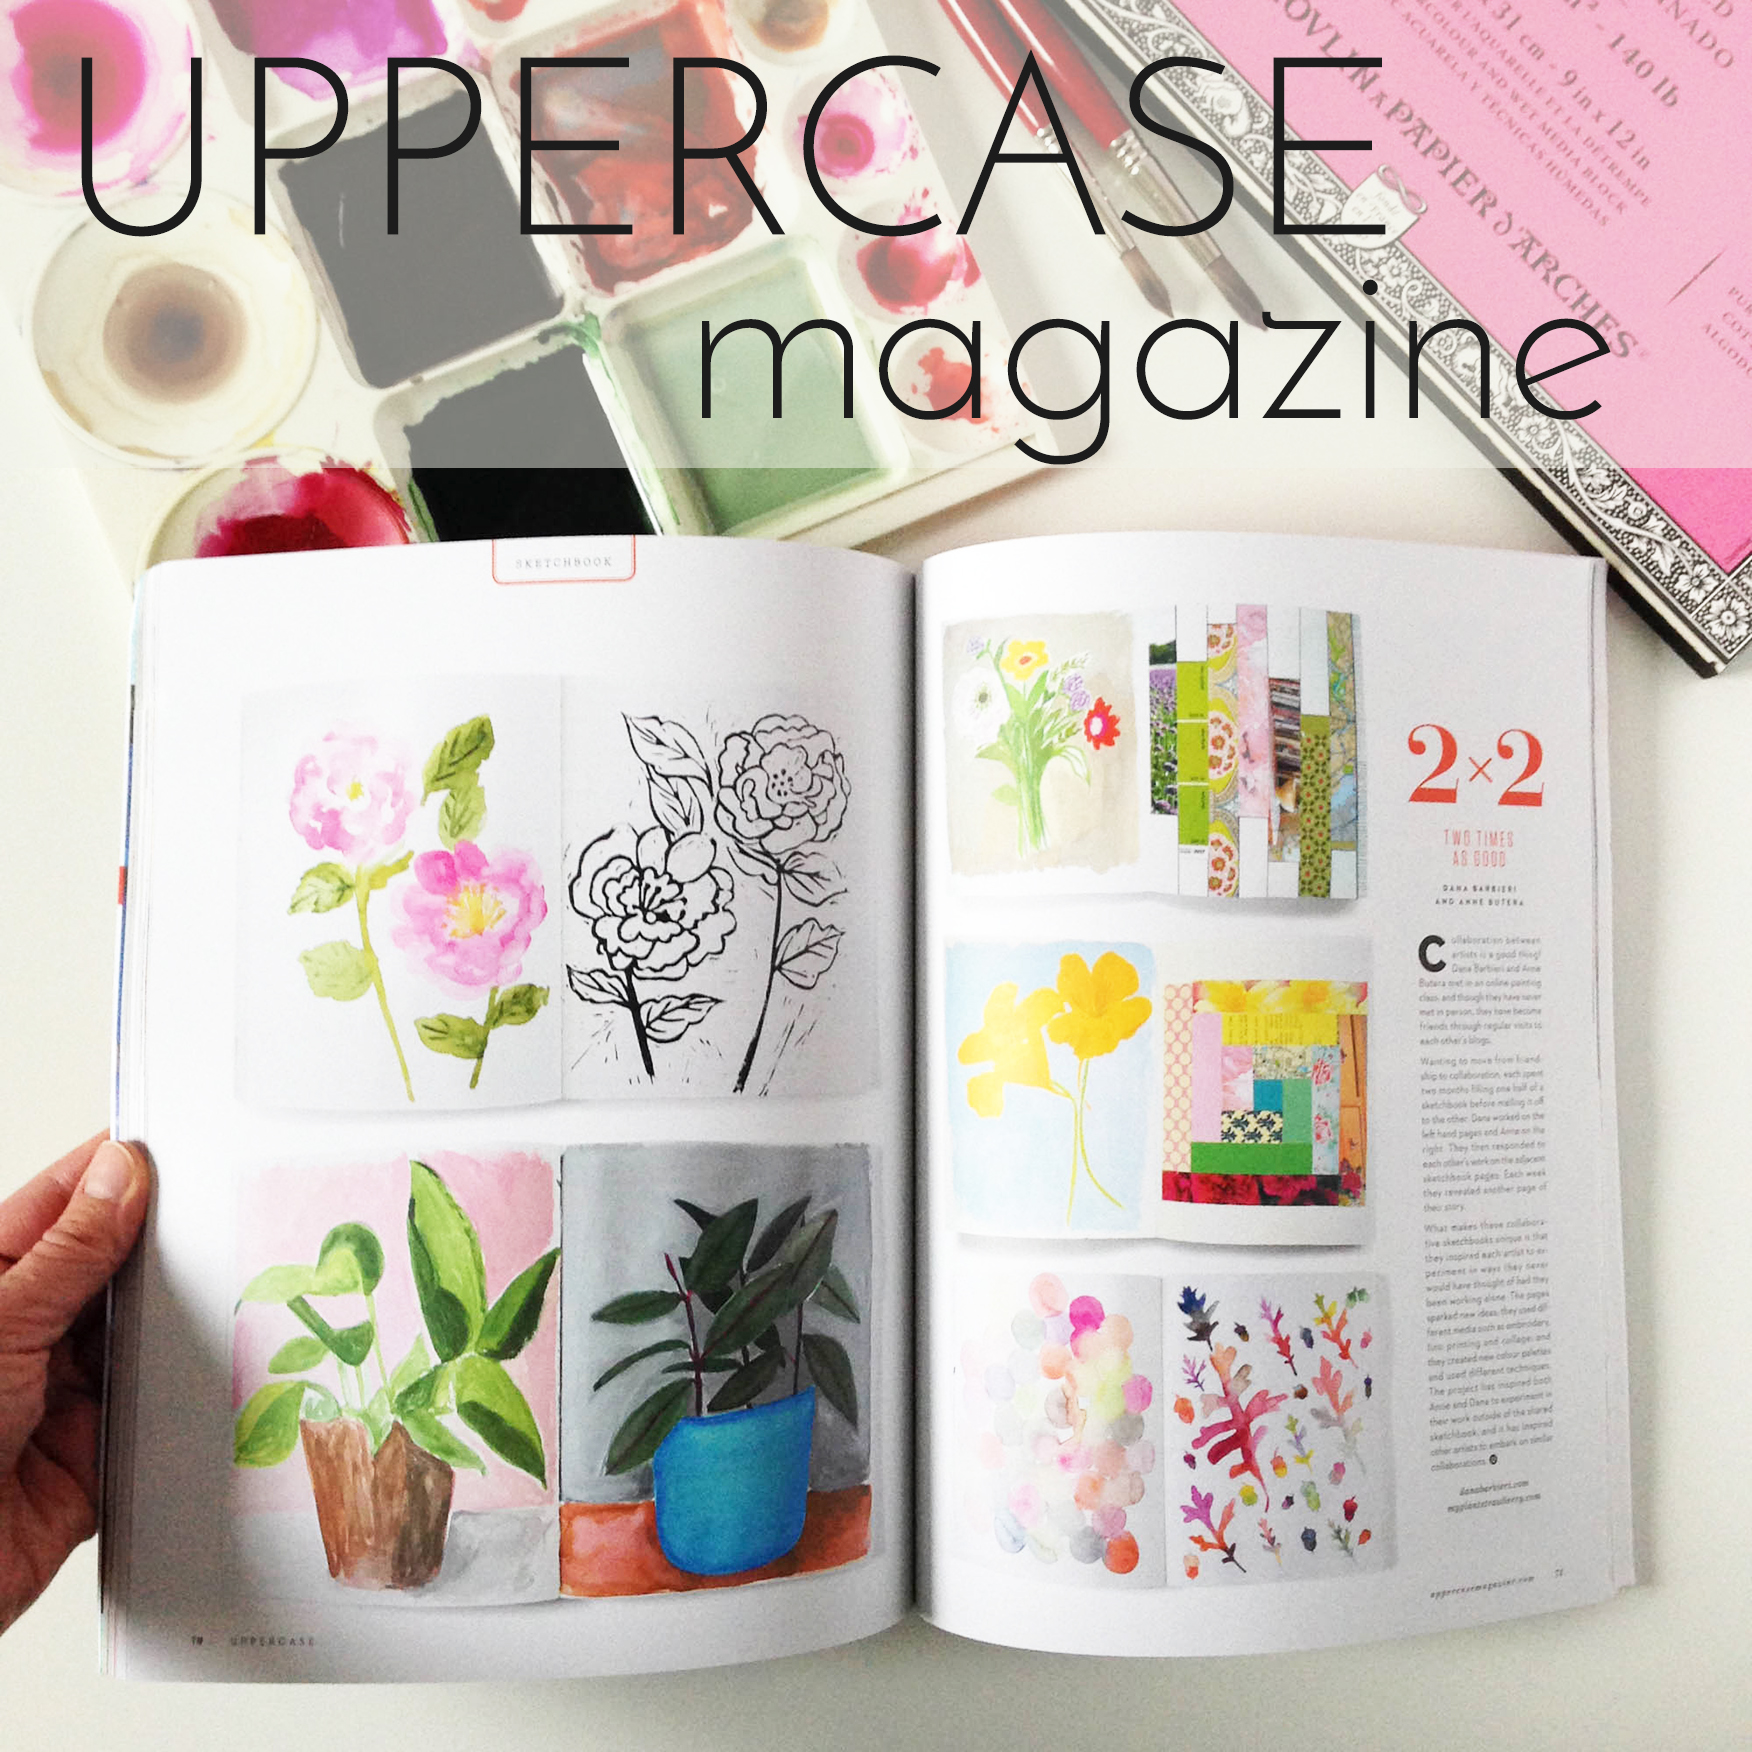 Anne Butera's and Dana Barbieri's Sketchbook Collaboration was featured in UPPERCASE Magazine